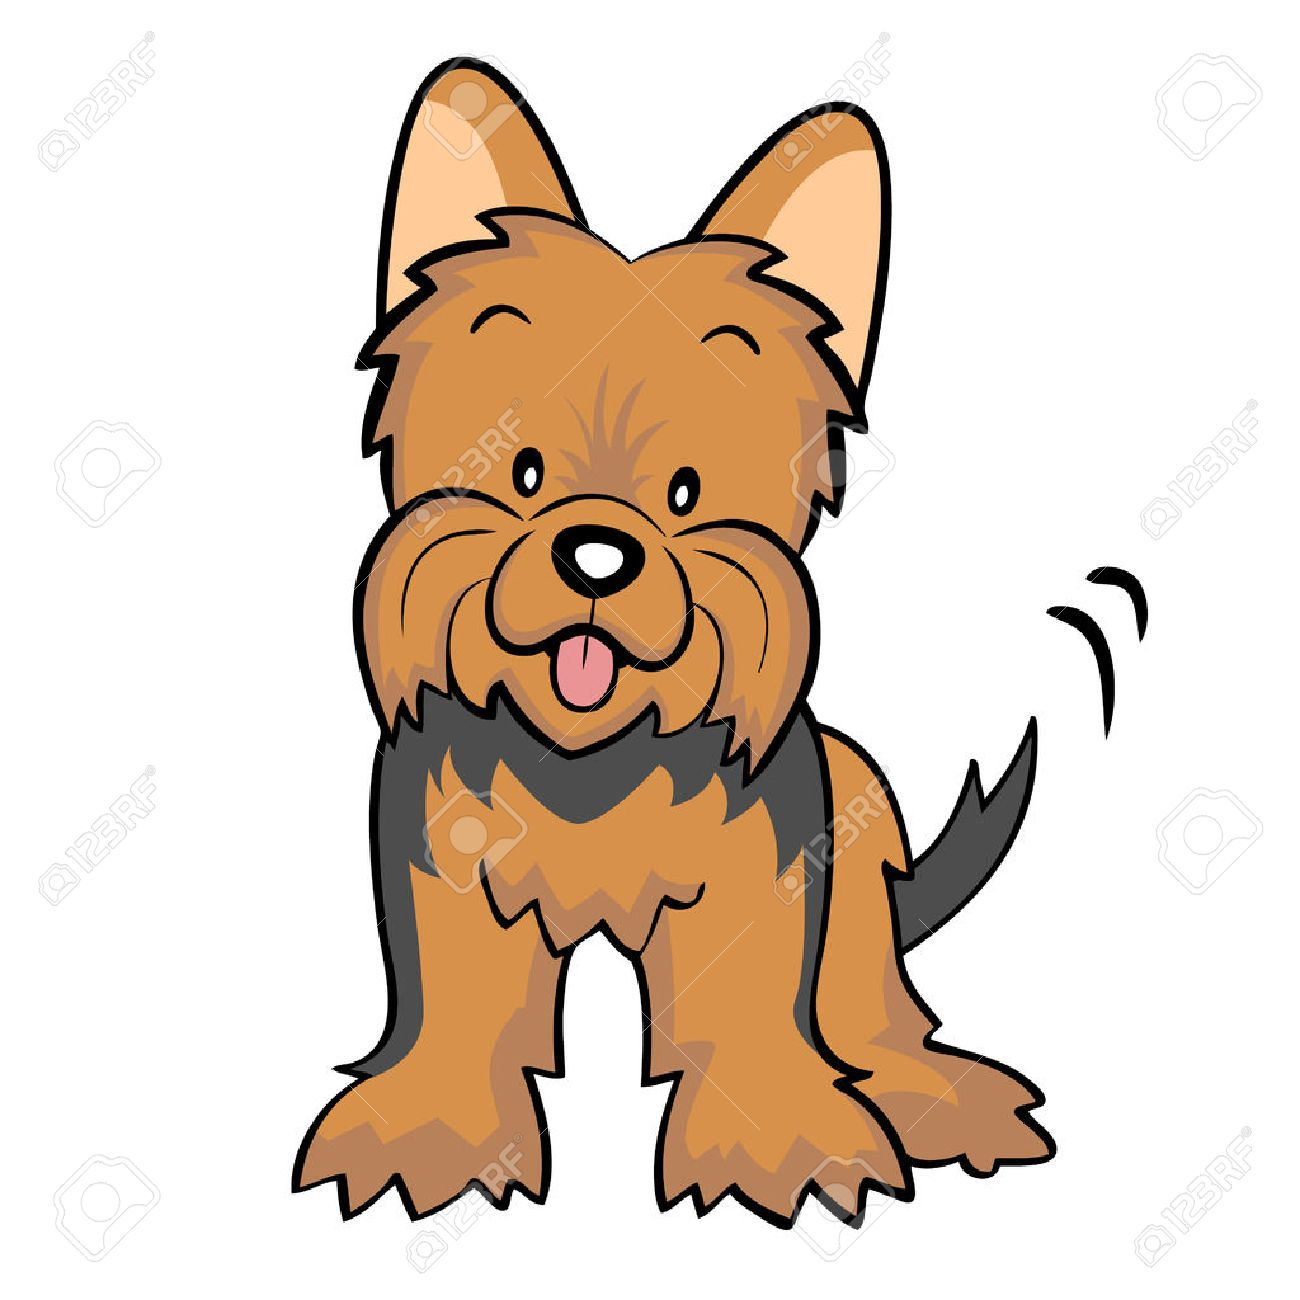 Yorkshire Terrier Clipart at GetDrawings.com.